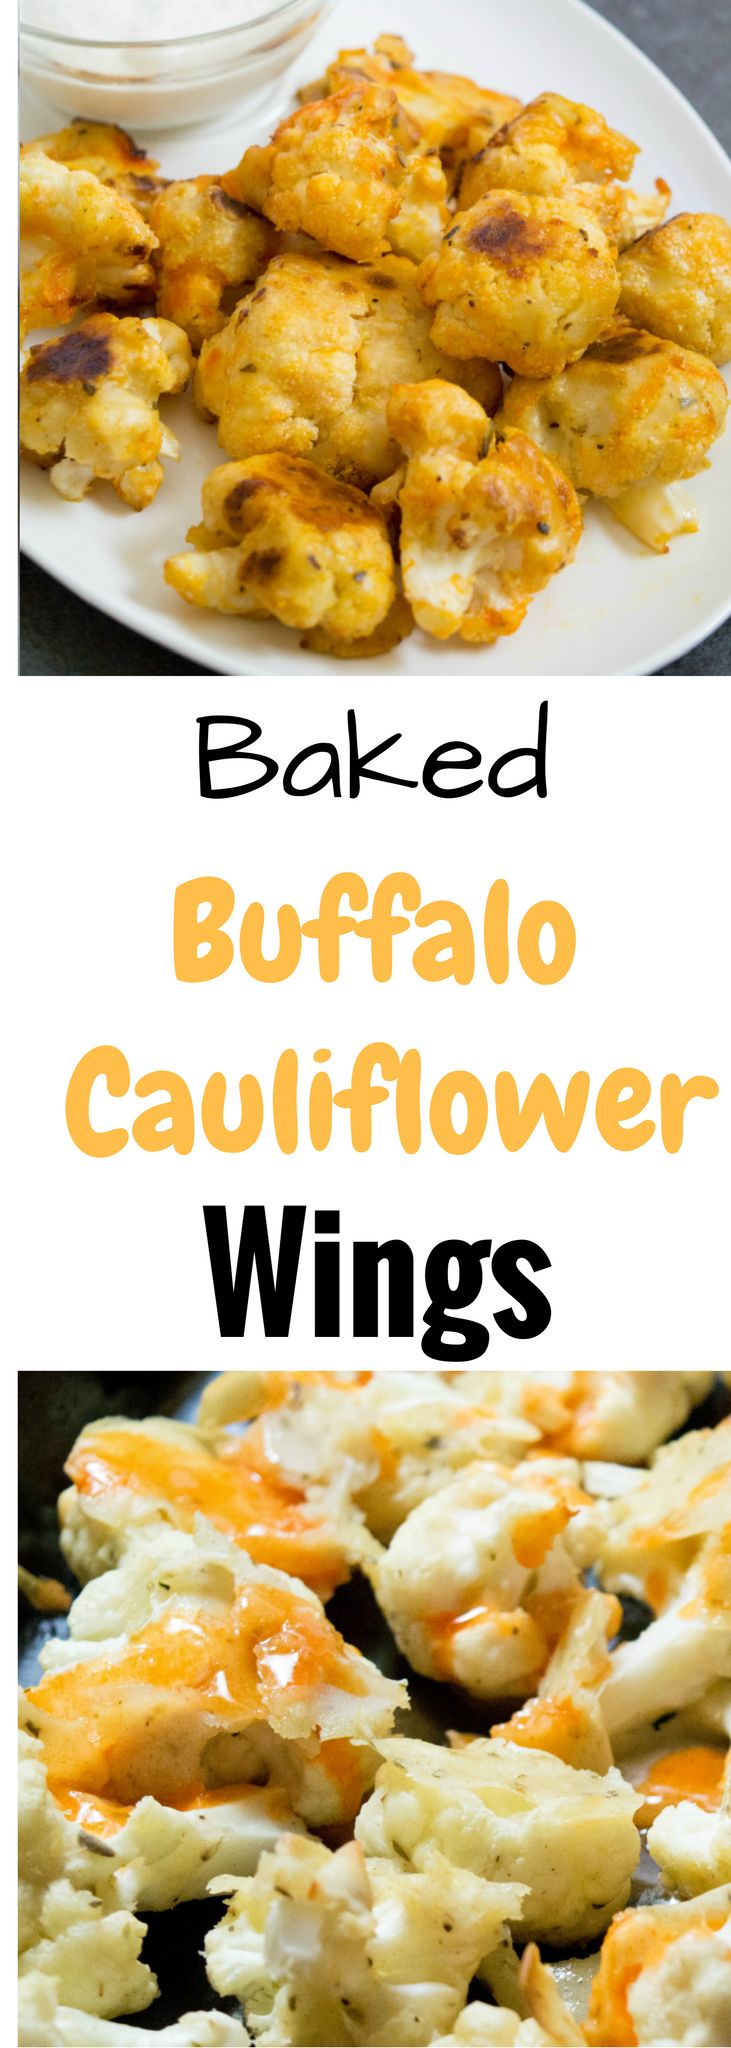 Buffalo Cauliflower Wings Recipe -These are a healthy food to have at your Football Tailgating/Homegating parties or BBQ's. I really enjoy how easy and tasty they turn out!